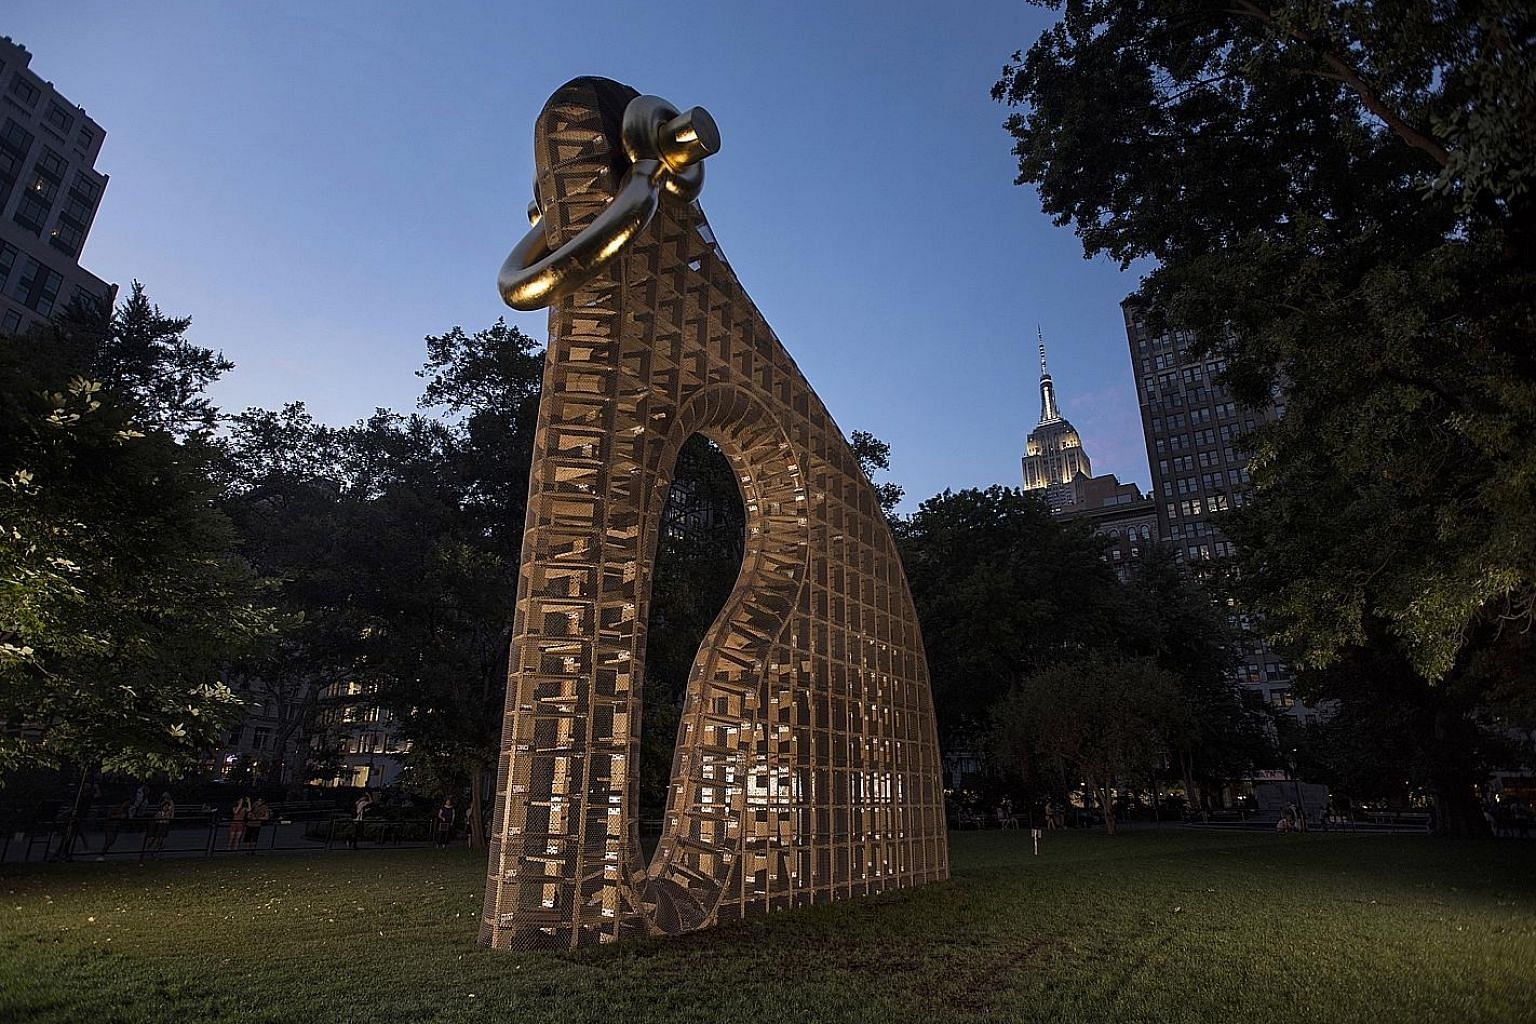 Martin Puryear's sculpture Big Bling, a 12.2m-high construction of plywood and chain-link fencing with a gold-leaf shackle, in Madison Square Park in New York.